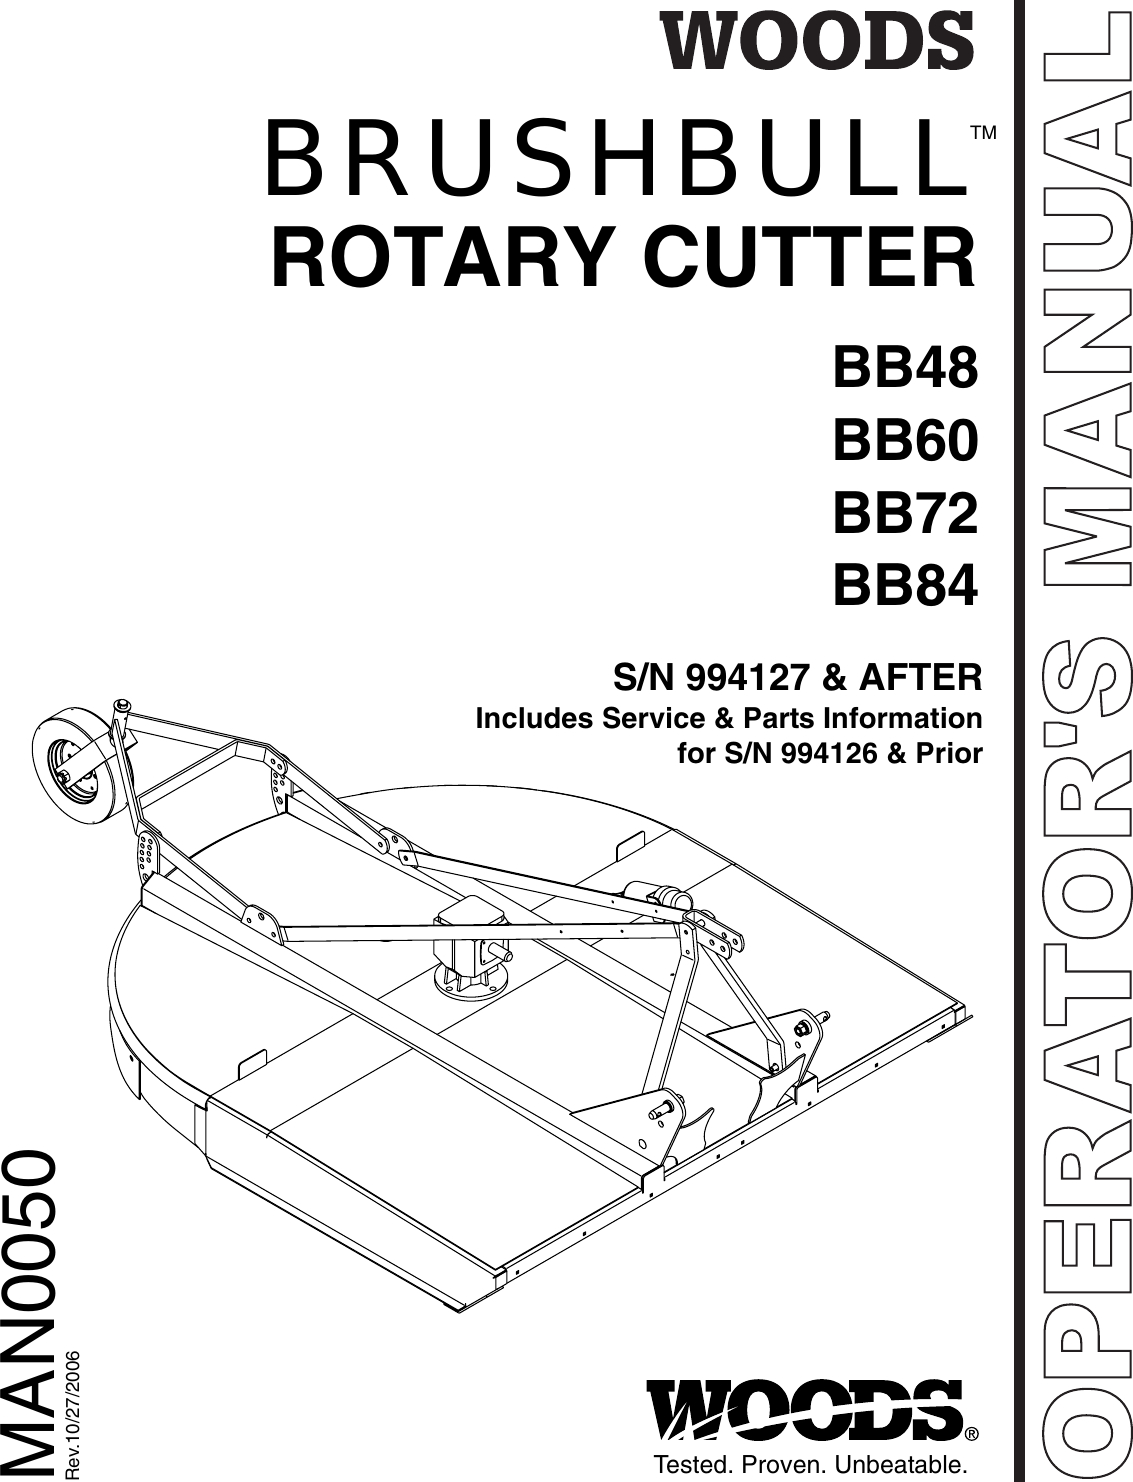 Woods Mower Parts Diagrams Brushbull Rotary Cutter Bb48 Bb60 Bb72 And Bb84 Woods